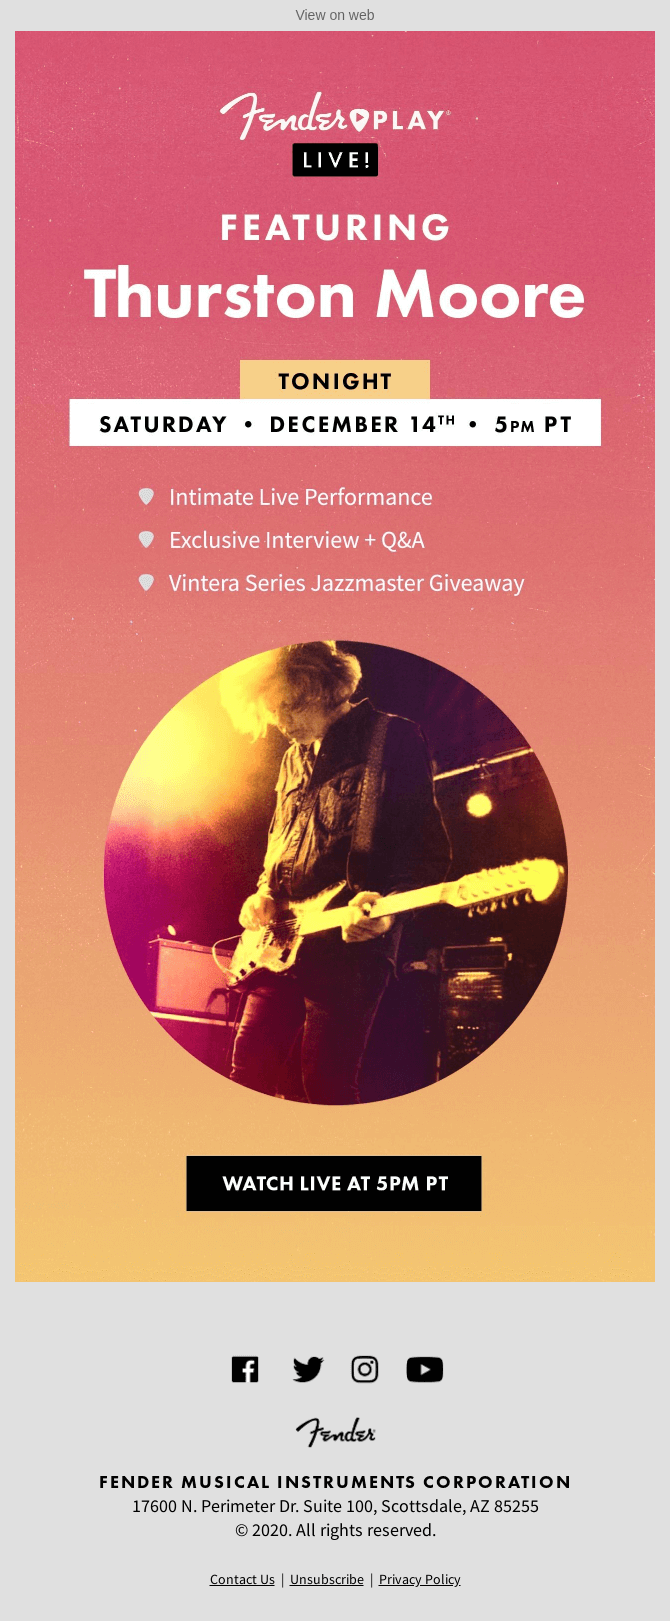 Fender event reminder email